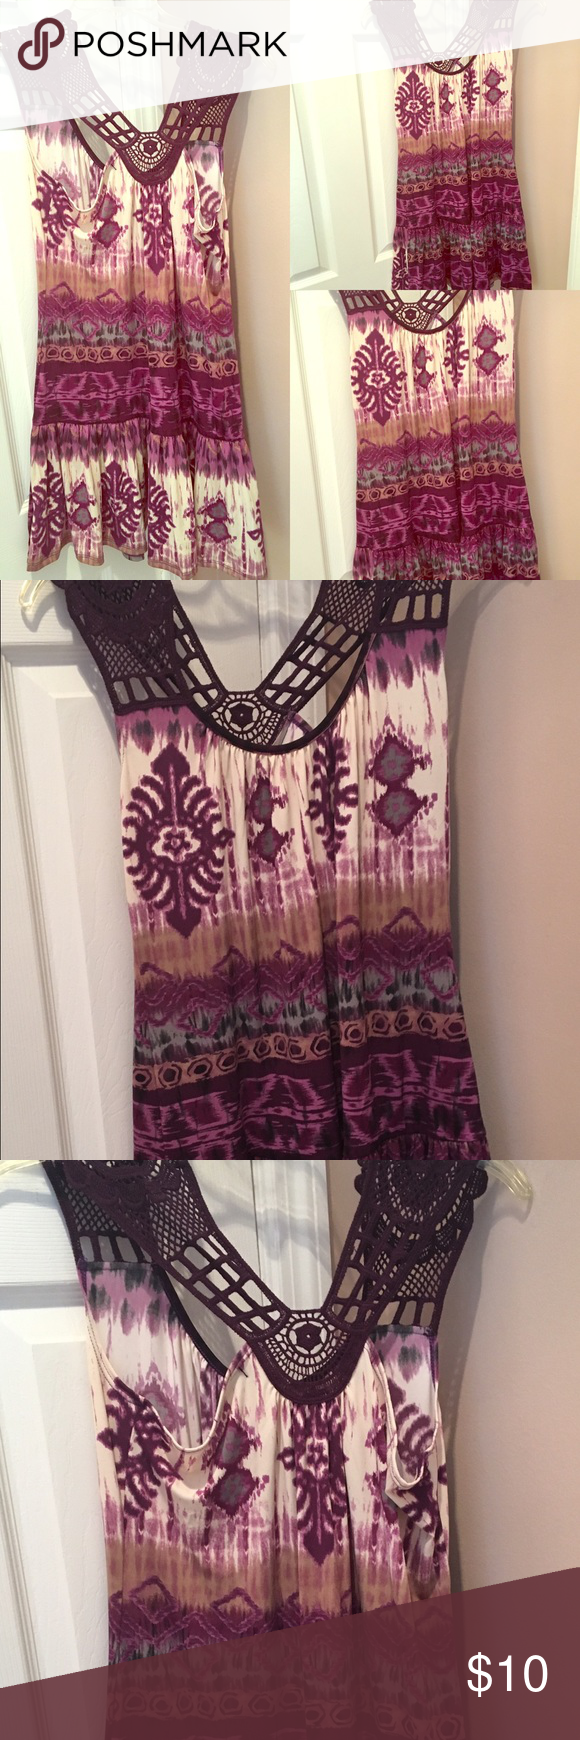 Lace dress purple  Venus Purple Crochet Lace Dress Size S   Crochet lace dress